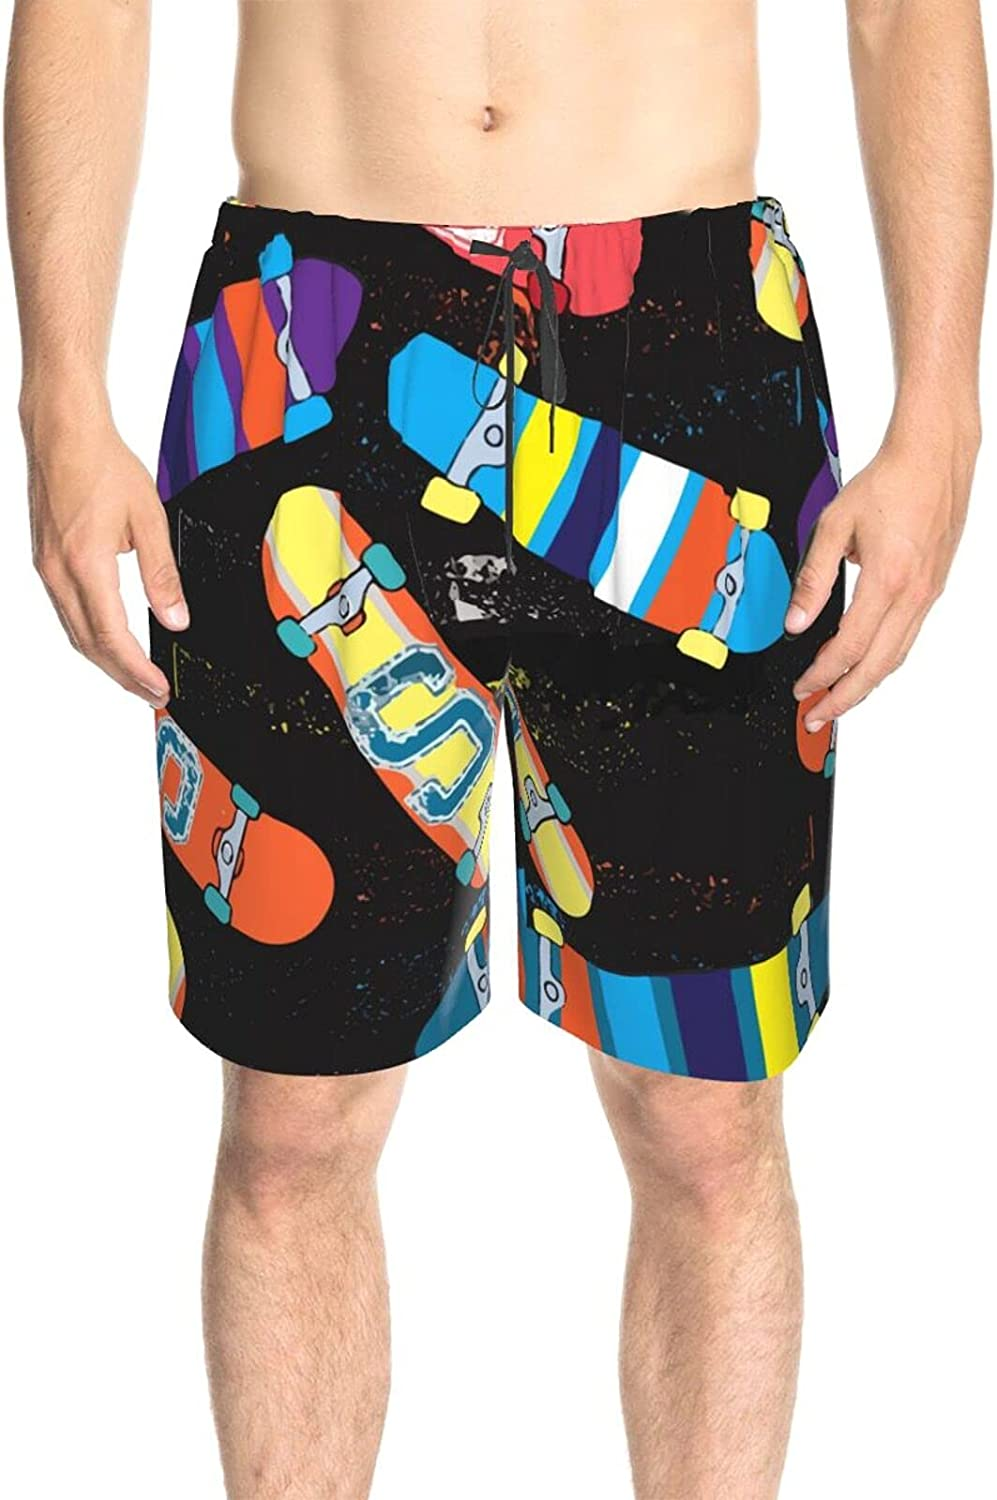 JINJUELS Men's Swim Trunks Colorful Skateboard Bathing Suit Boardshorts Quick Dry Cool Athletic Beach Short with Mesh Lining